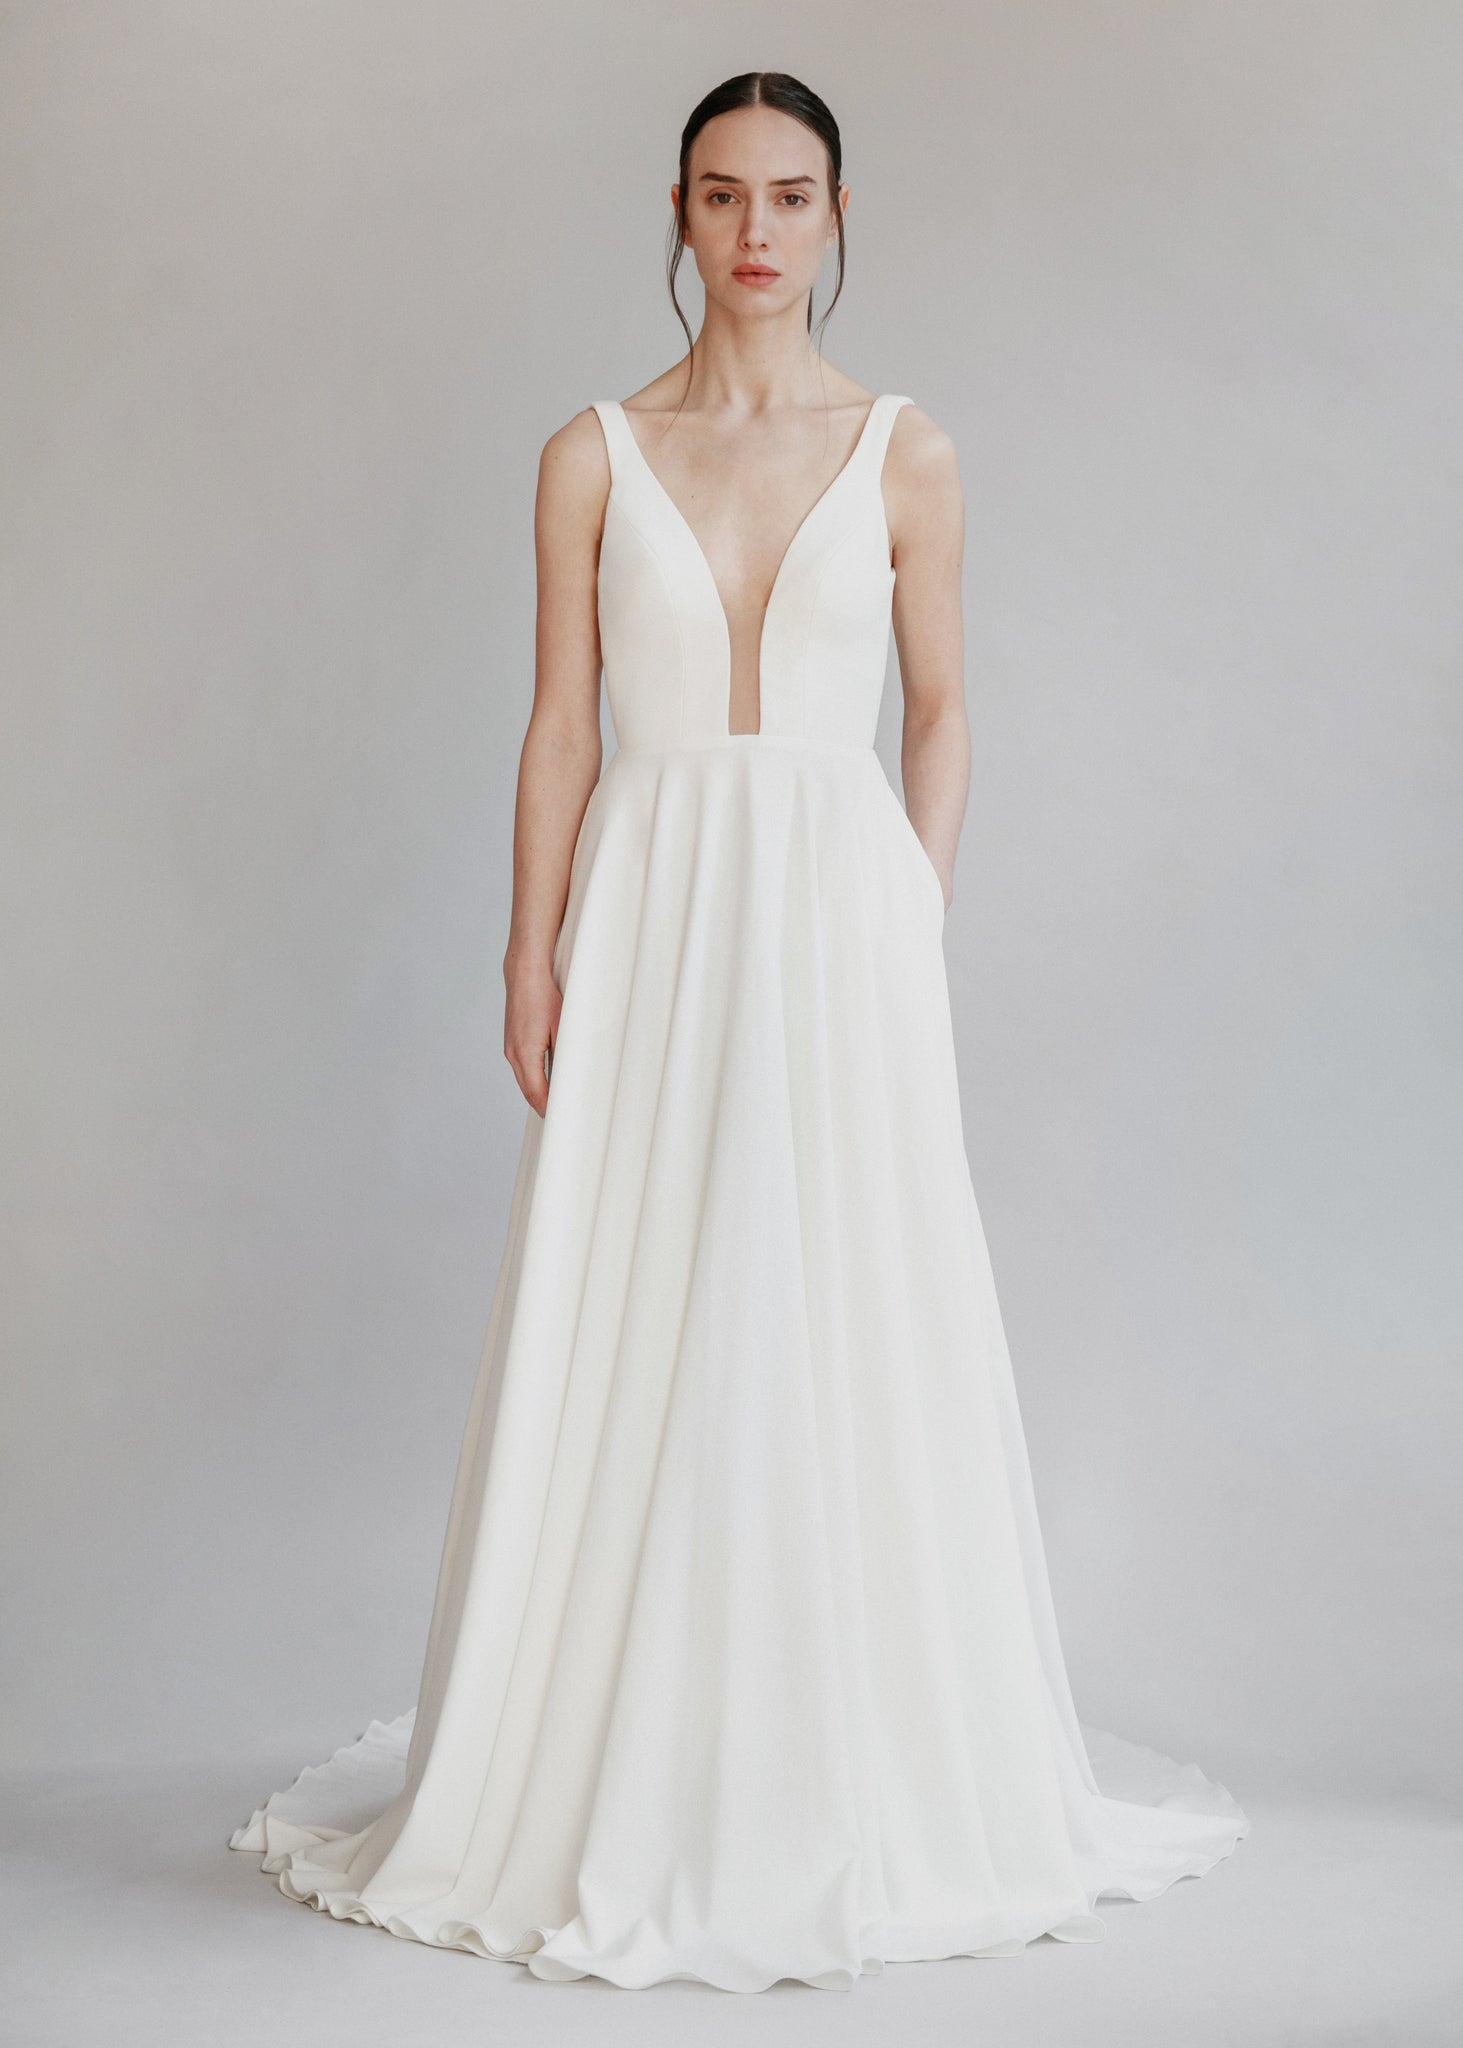 Simple crepe wedding dress with a plunging neckline, open back, and hidden pockets